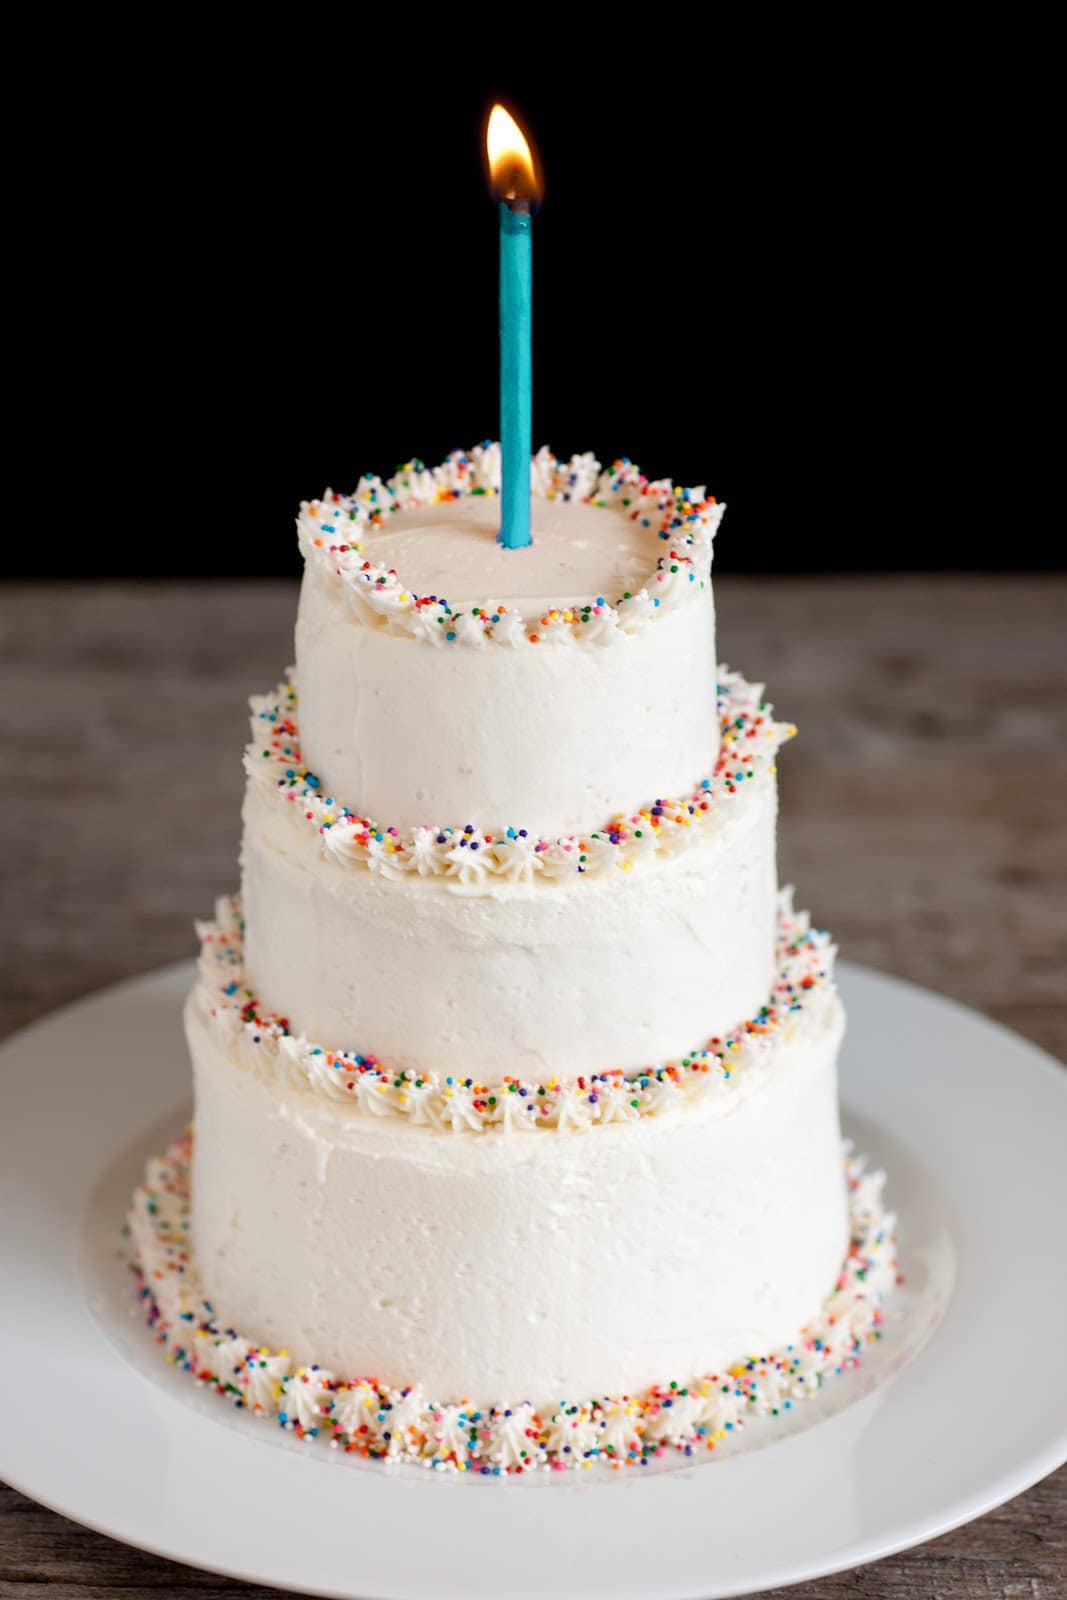 Birthday Cake Icing Recipe Buttercream Frosting Perfect Ratio Best Method Cooking Classy